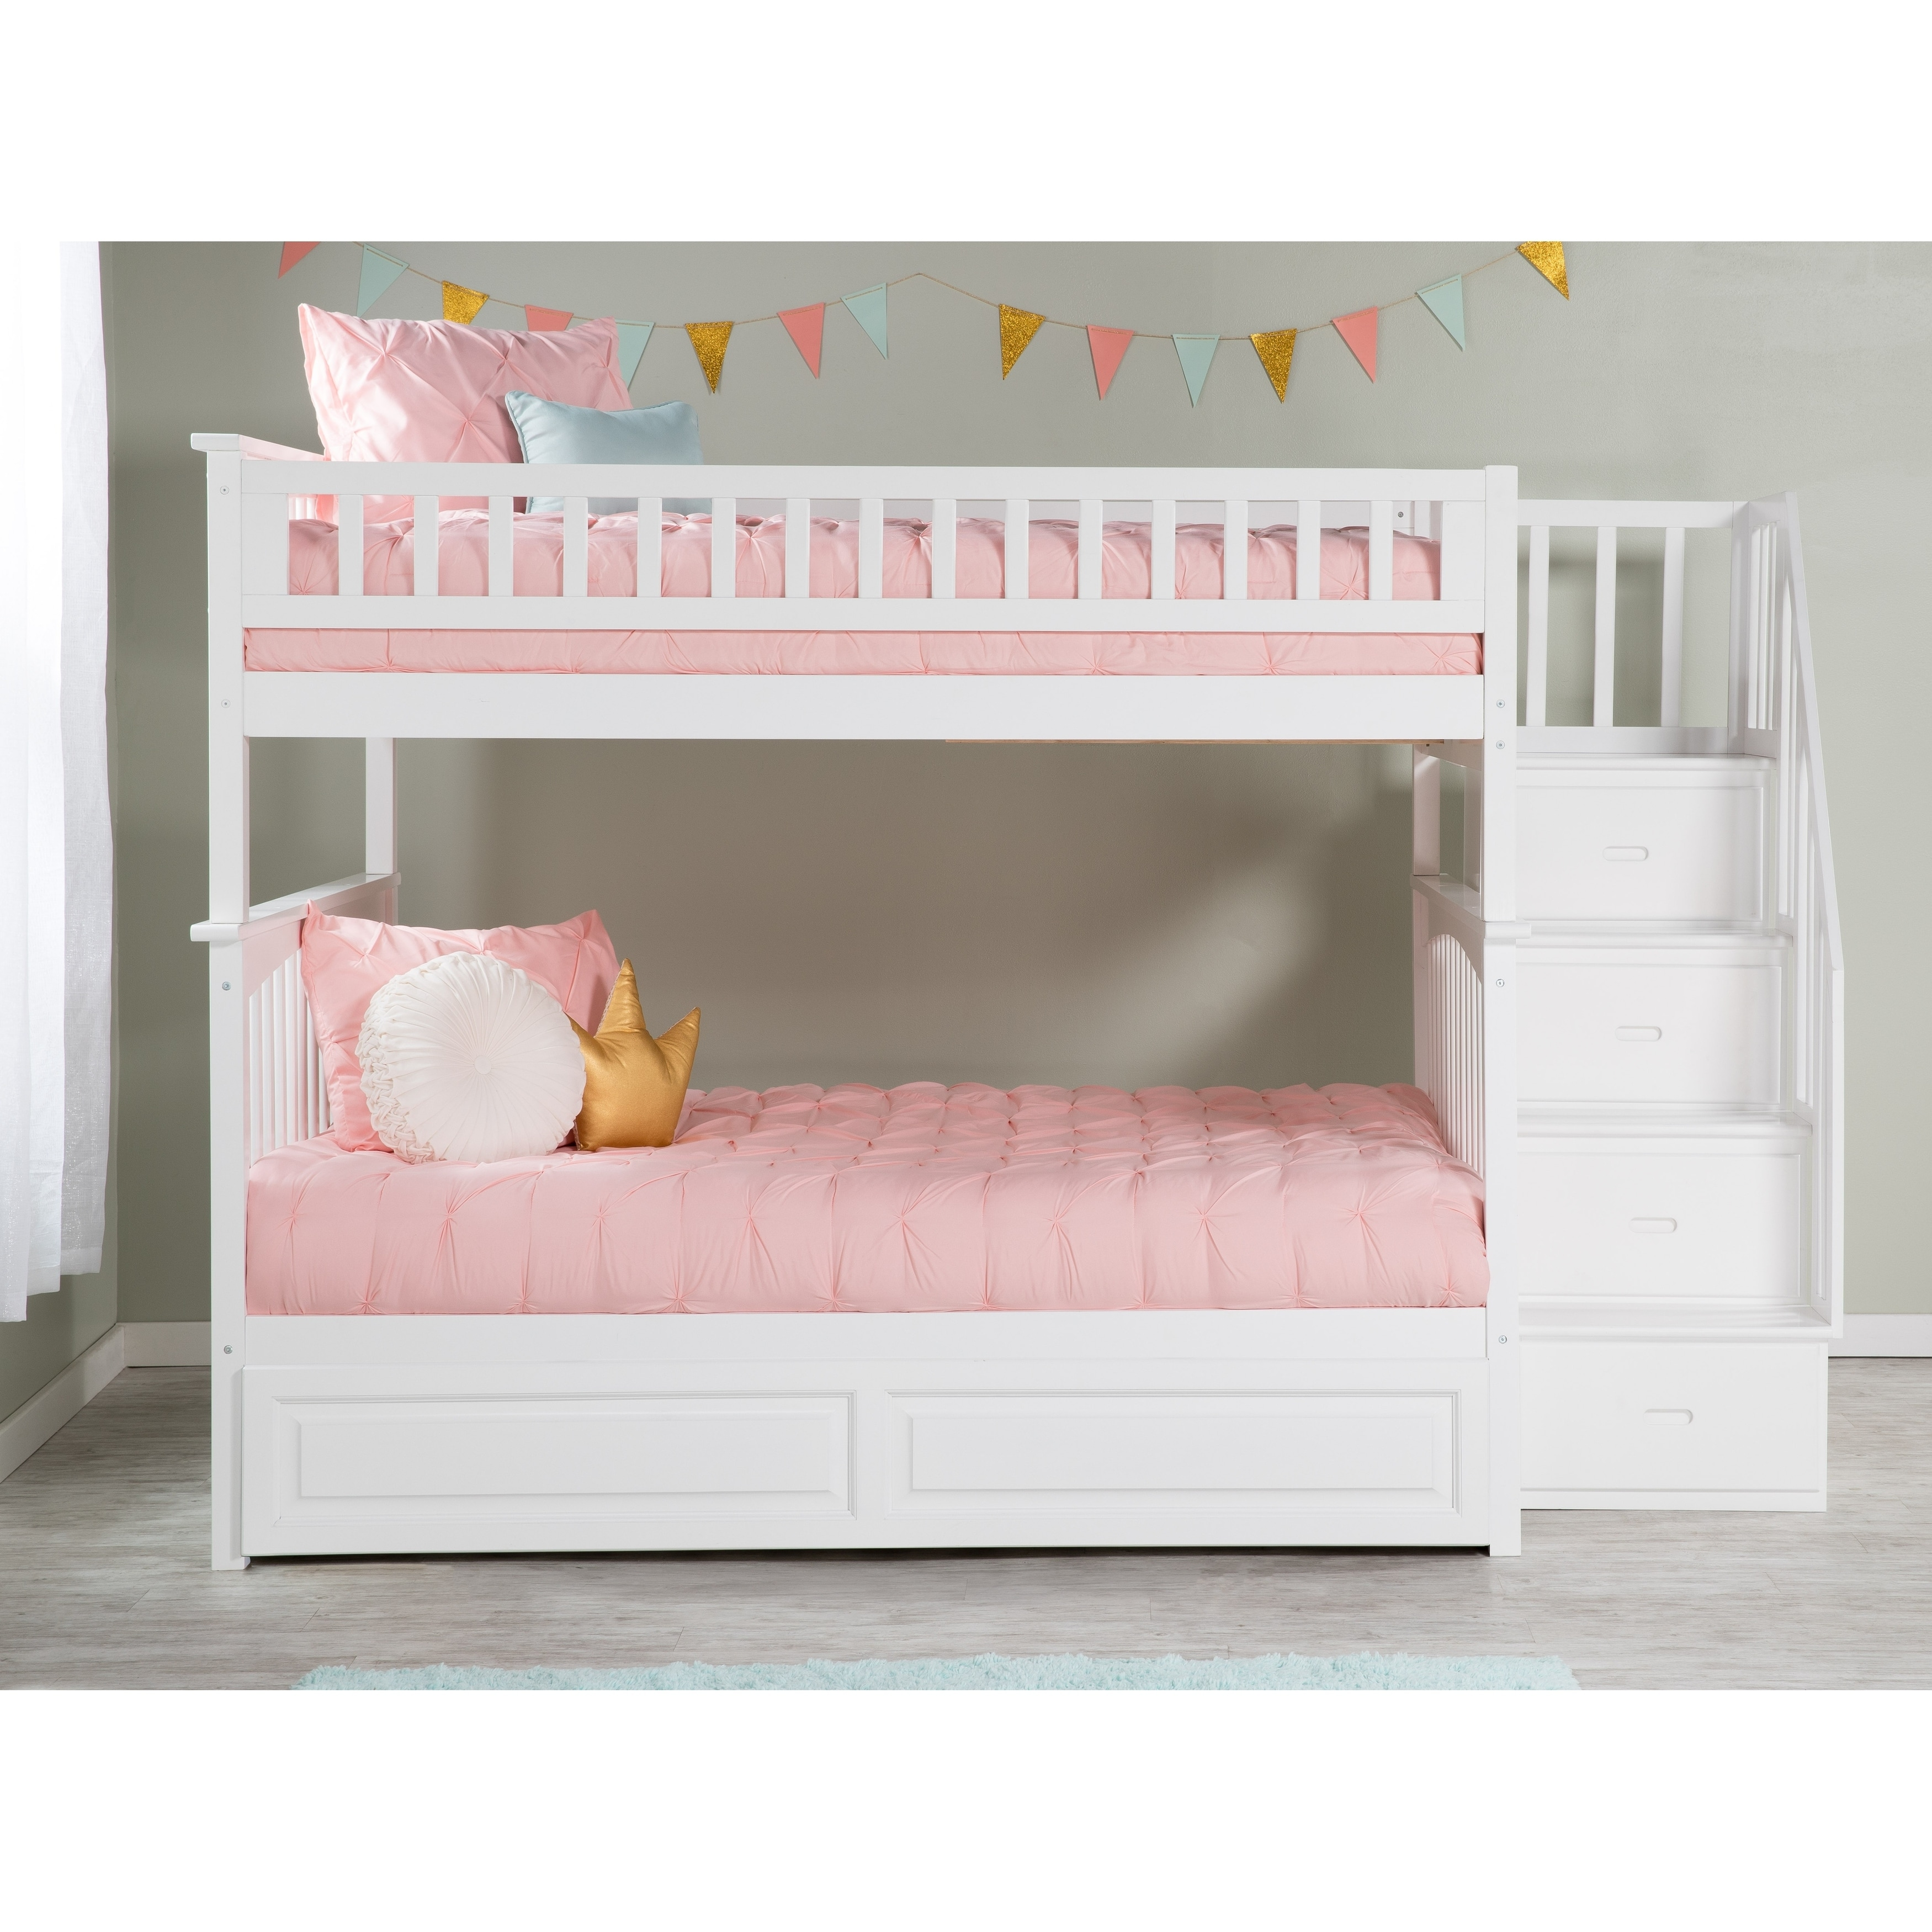 Shop Columbia White Full Over Full Staircase Bunk Bed And Trundle